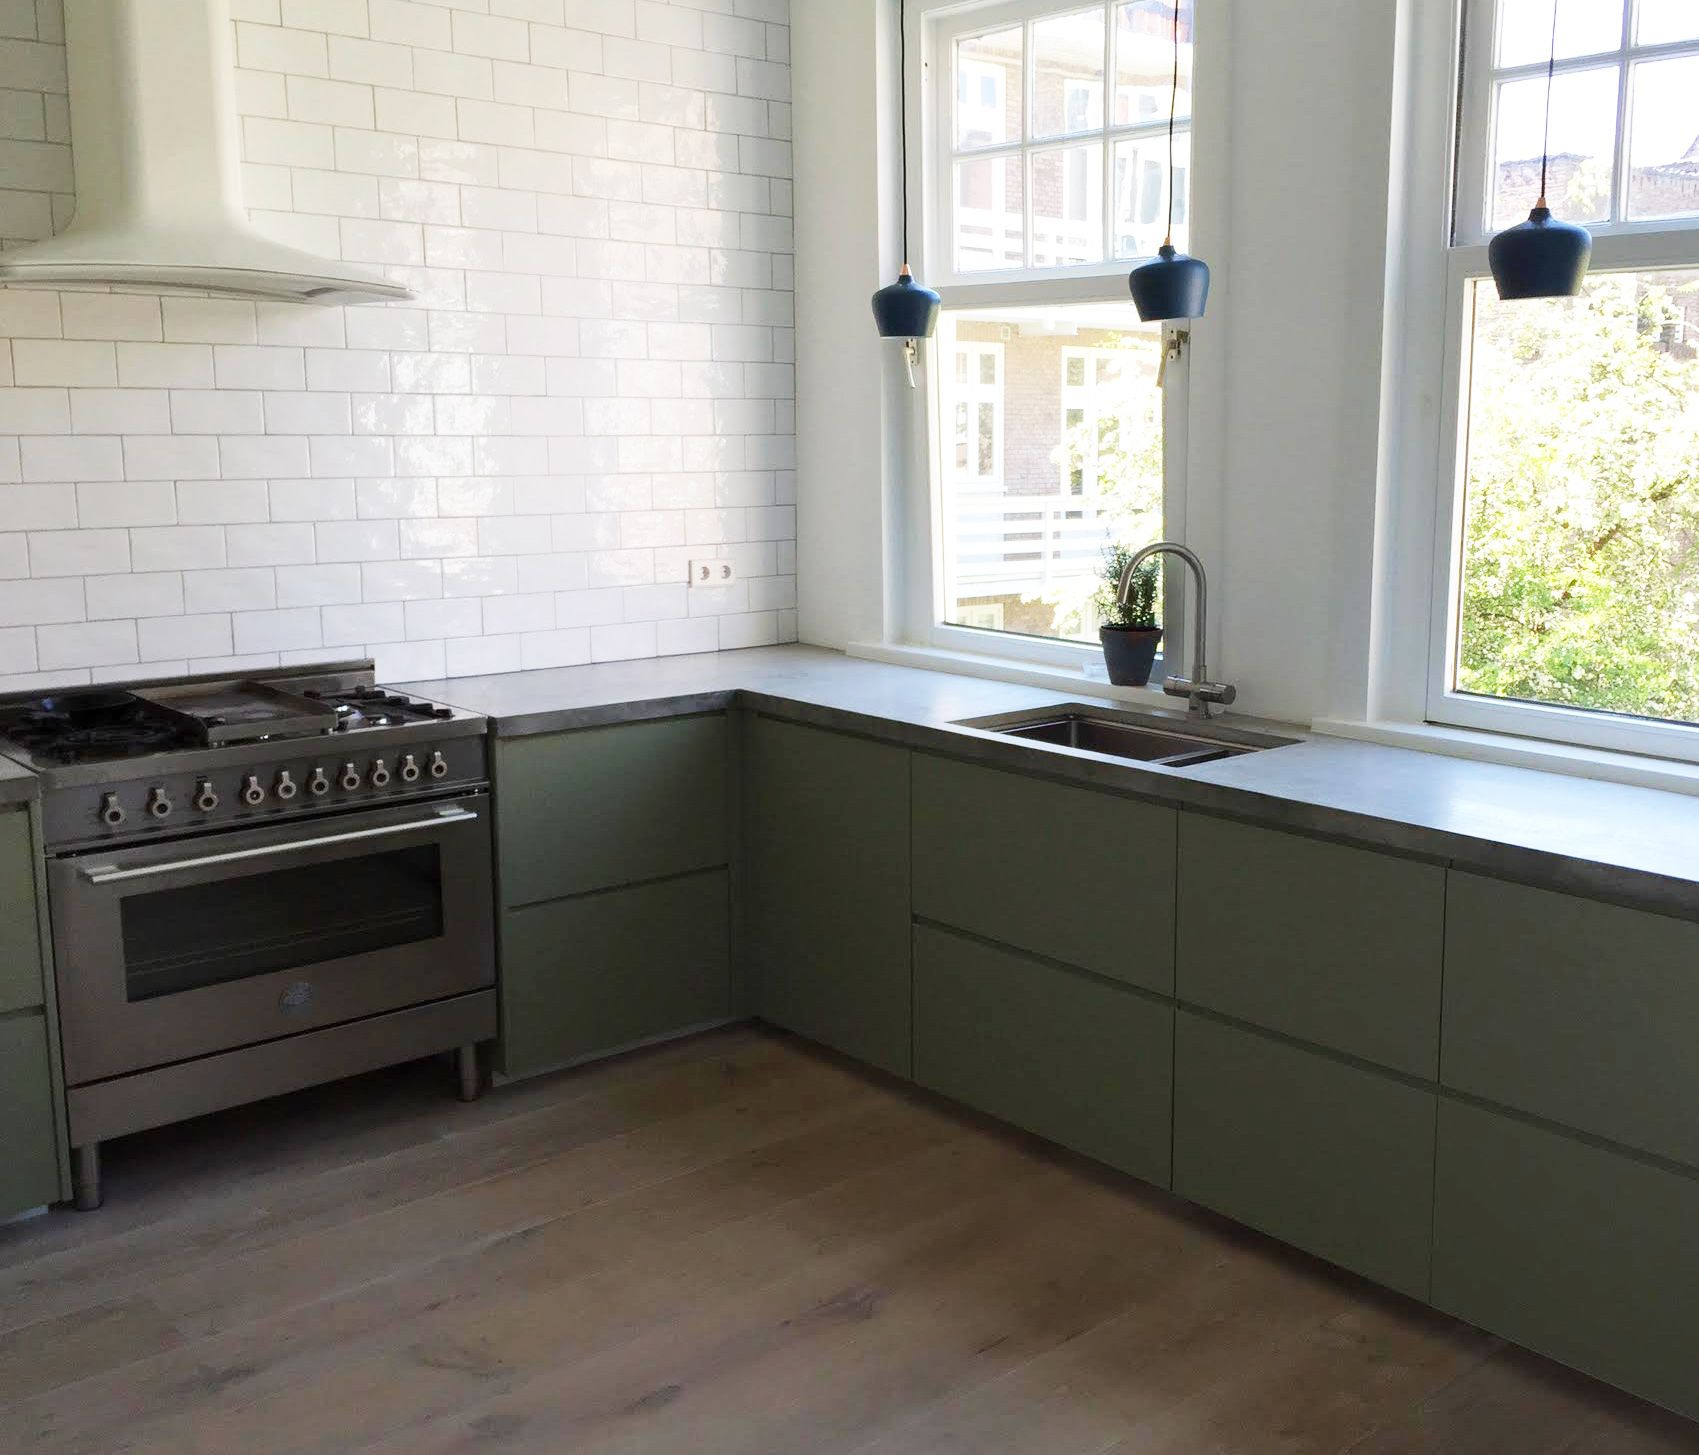 Ikea Kitchen Upgrade 8 Custom Cabinet Companies For The Ultimate Glamorous Kitchen Cabinet Design Ikea 2018